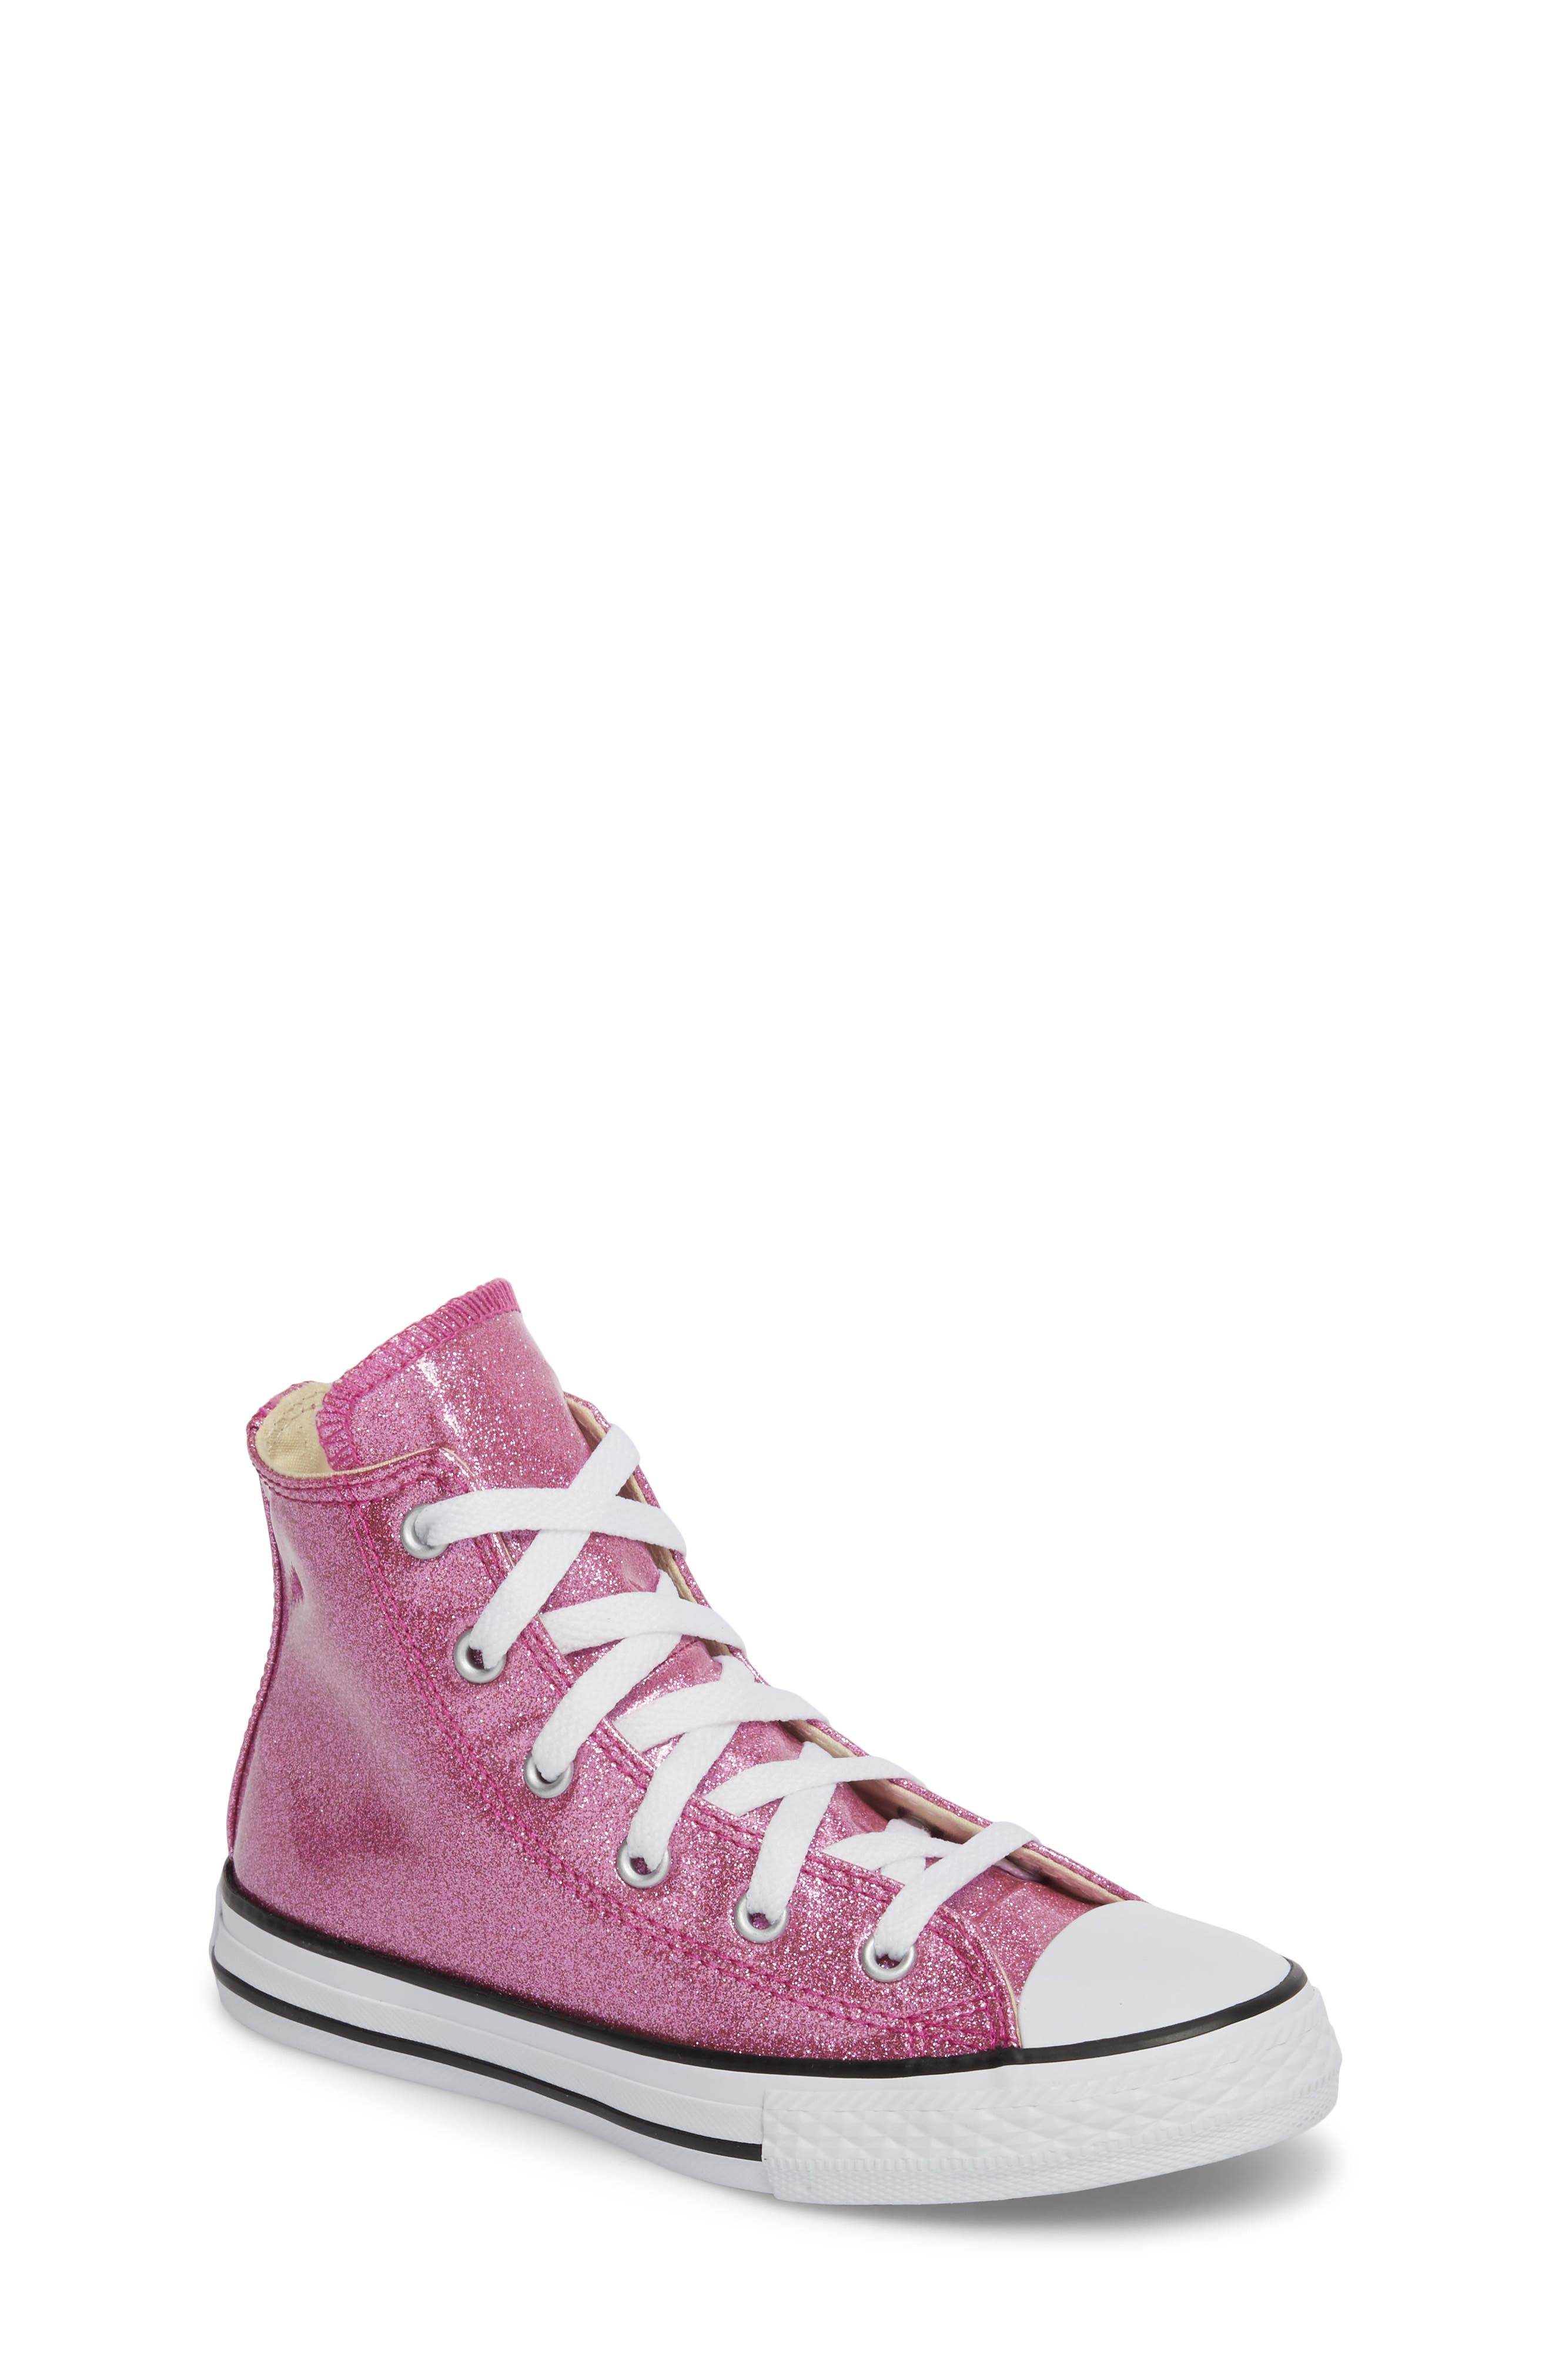 All Star<sup>®</sup> Glitter High Top Sneaker,                         Main,                         color, Bright Violet